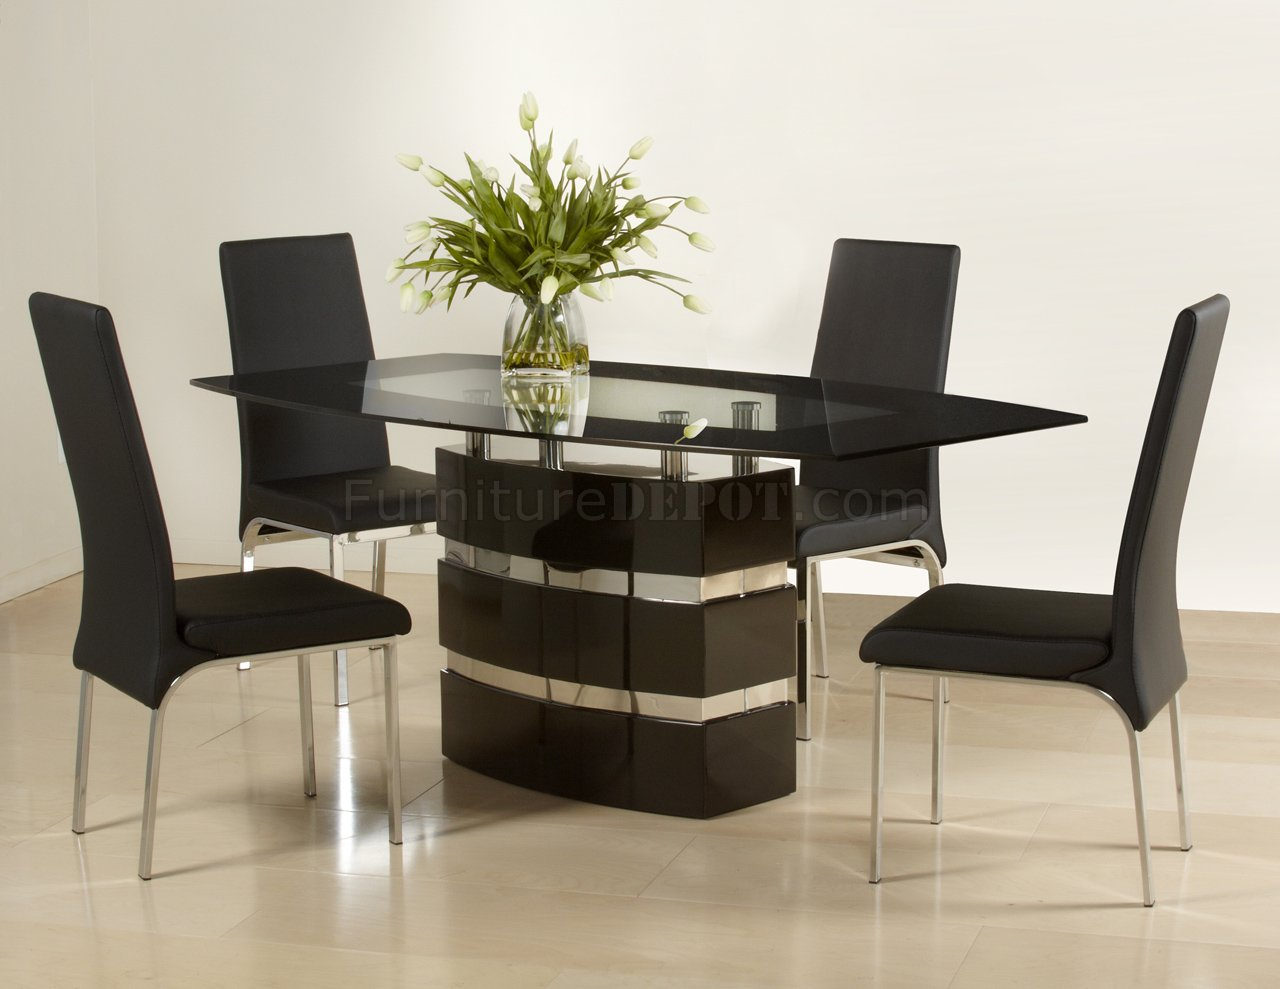 Modern Table And Chairs Black High Gloss Finish Modern Dining Table W Optional Chairs